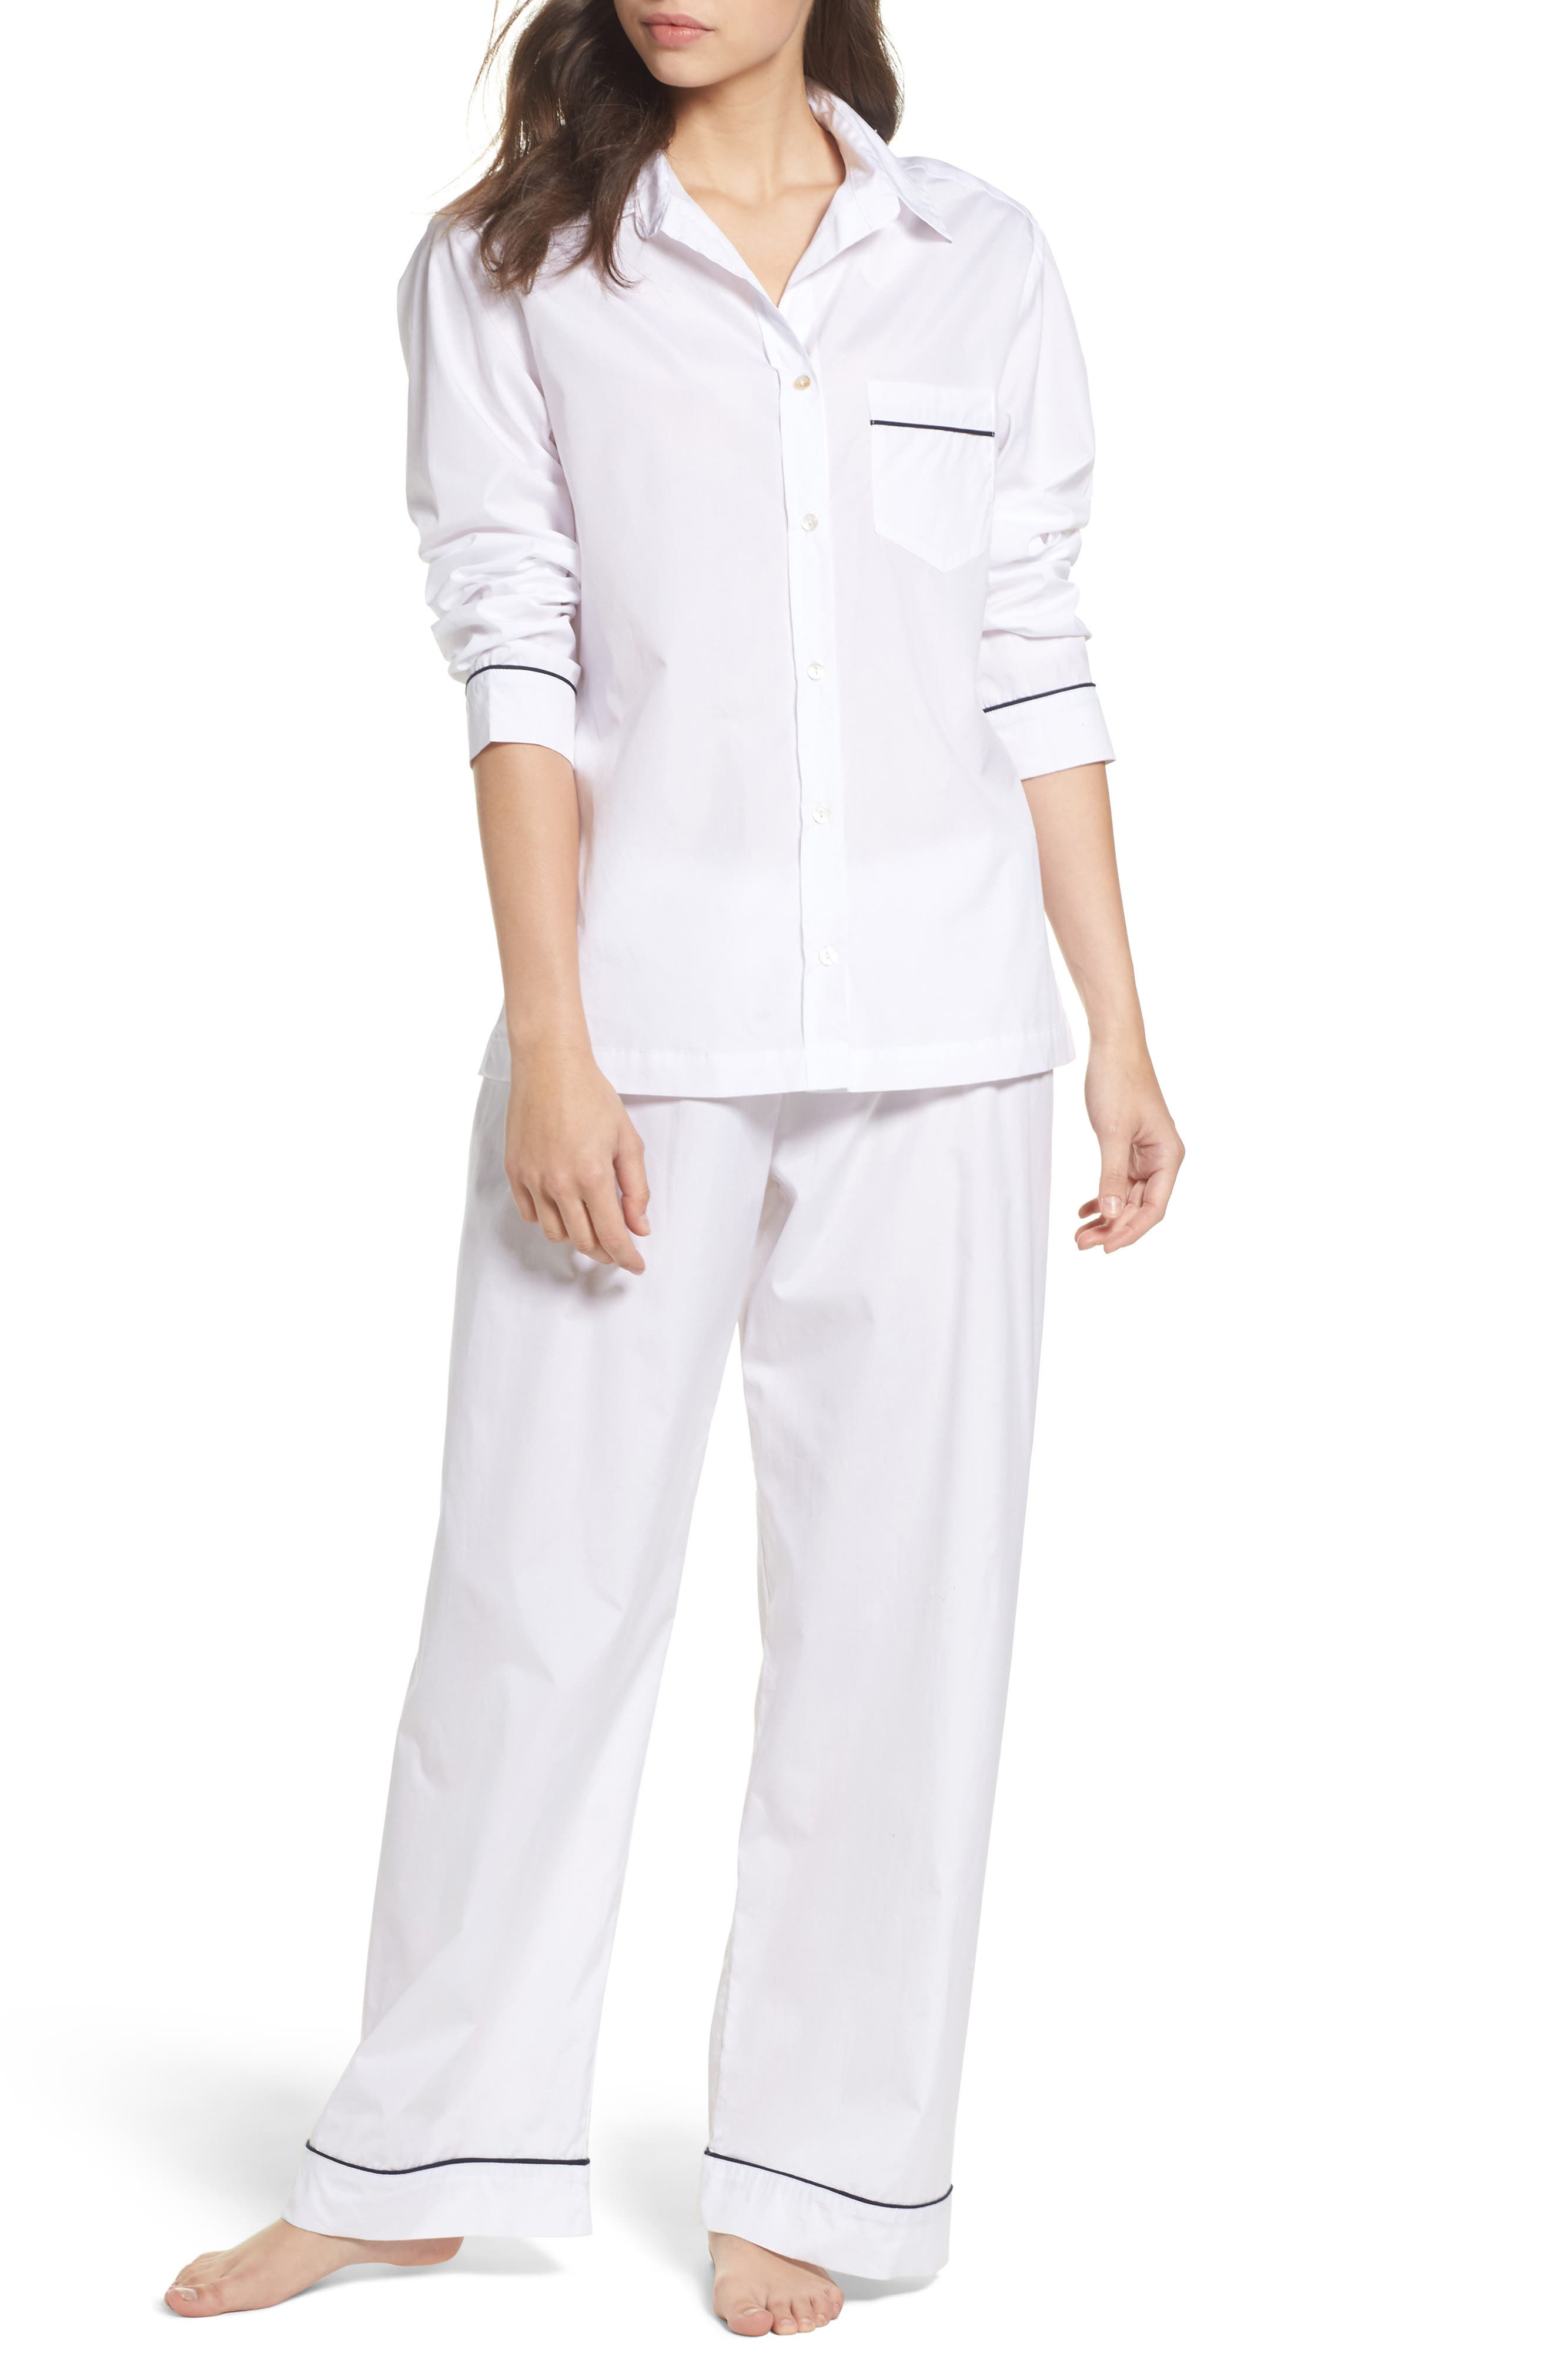 Alternate Image 1 Selected - Pour Les Femmes Piped Pajamas